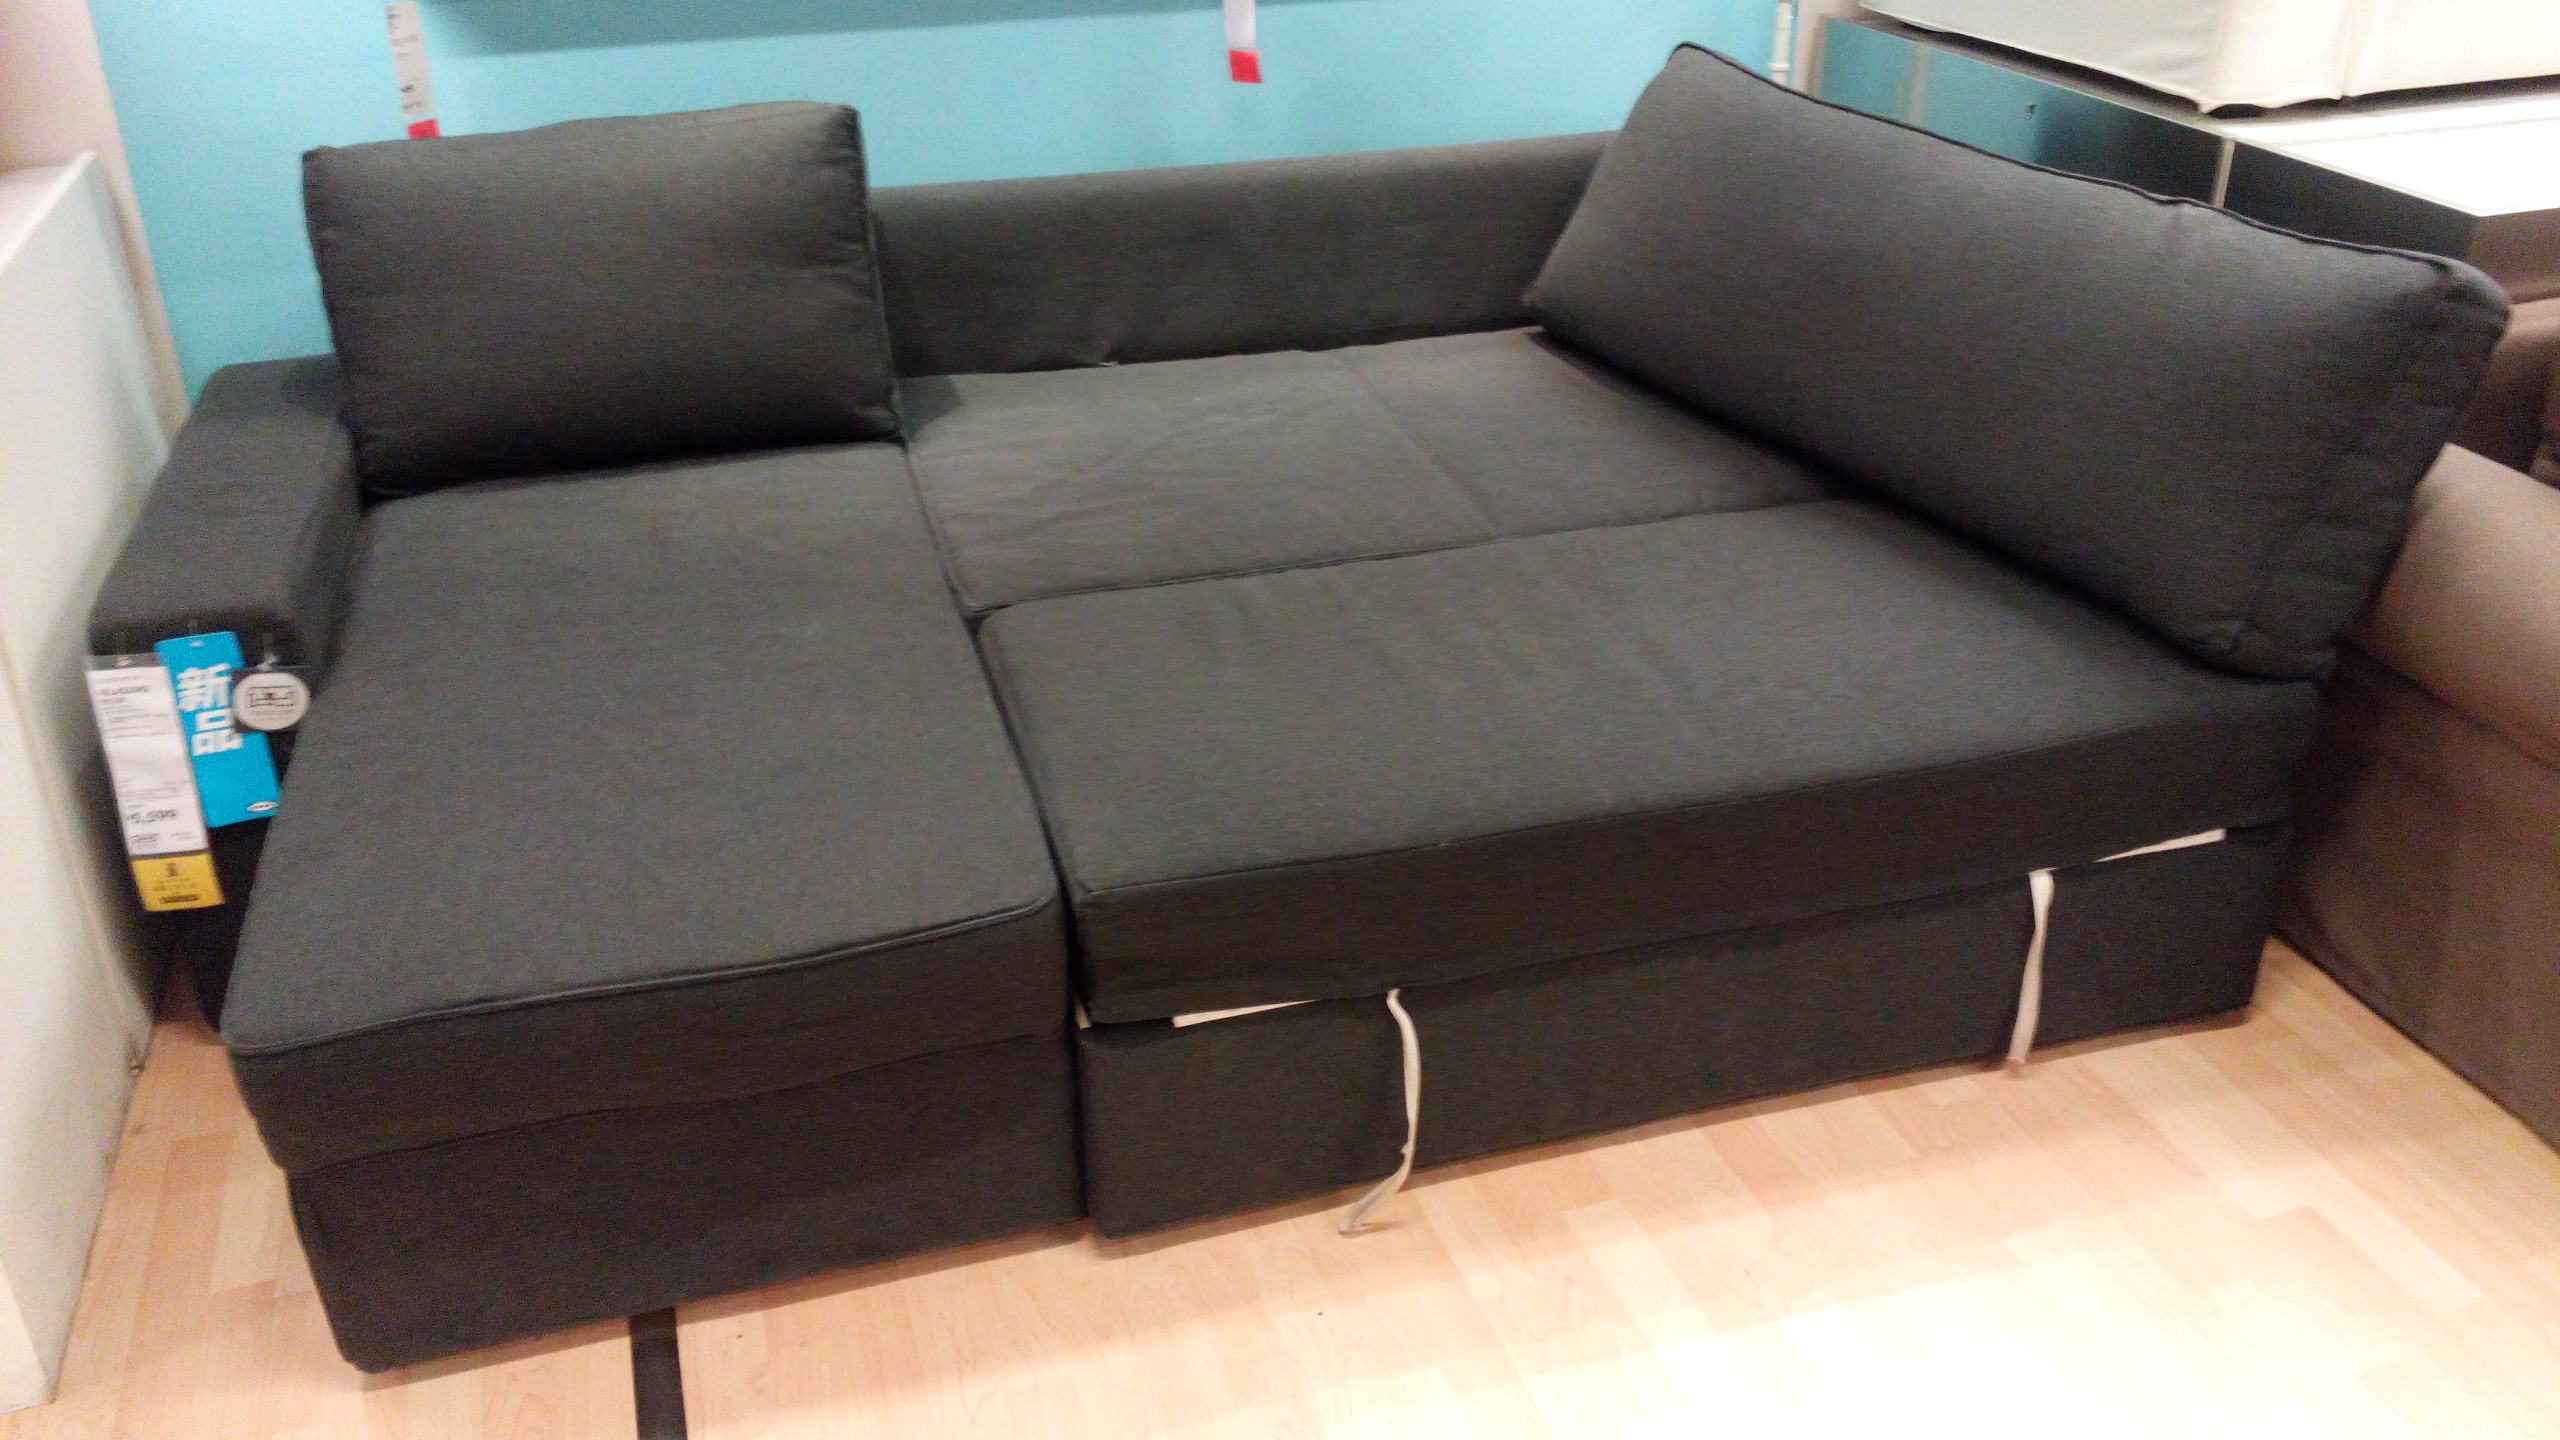 Ikea Introduce New Sofabed That Is Unusable As Both Bed And Sofa